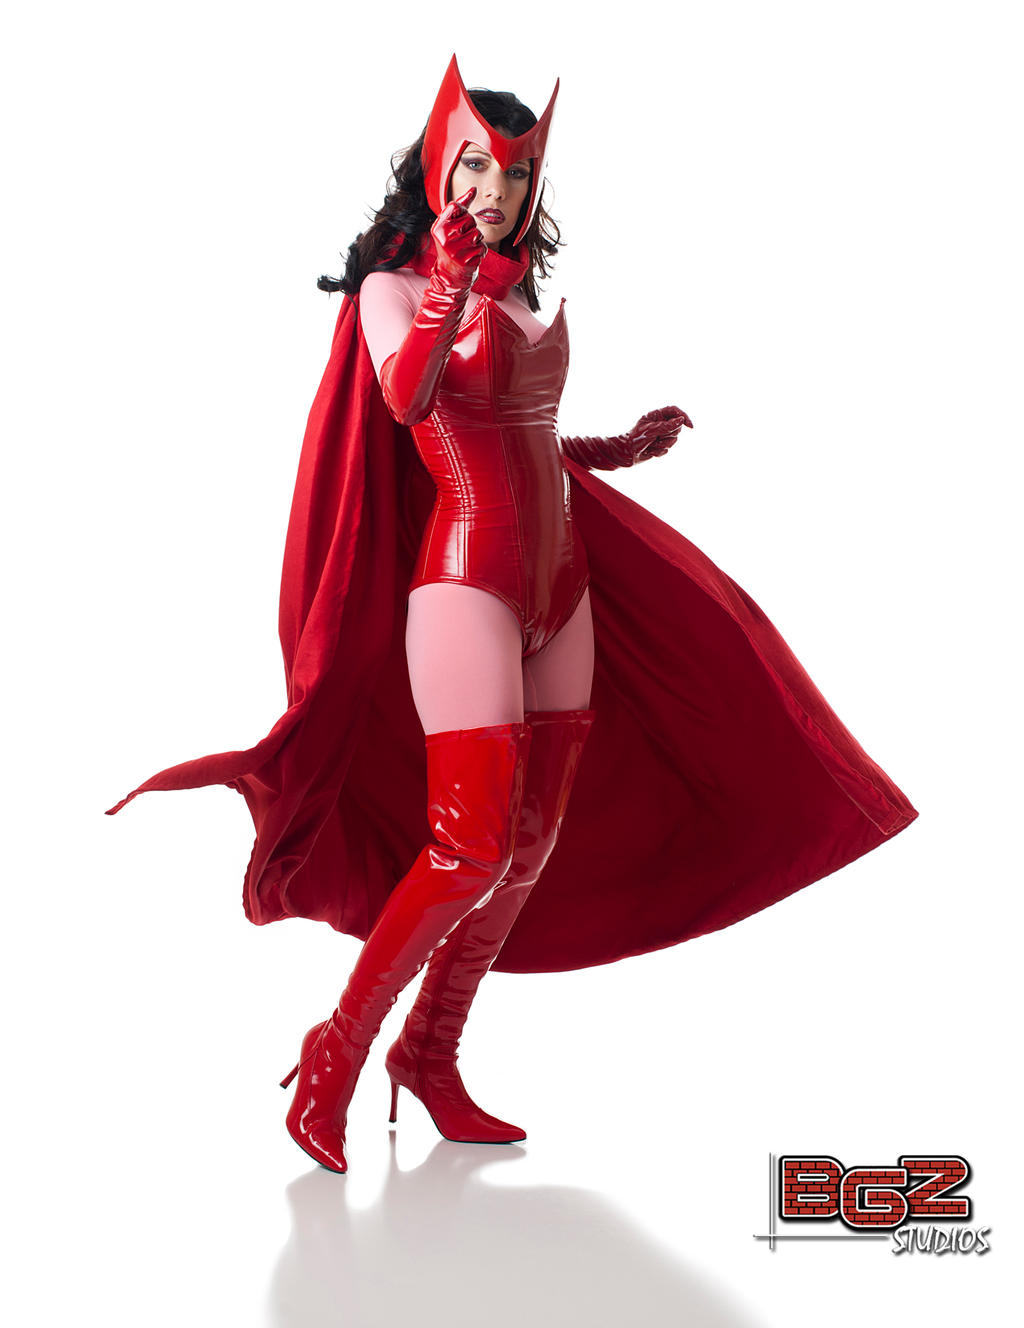 Scarlet Witch 2 by bgzstudios